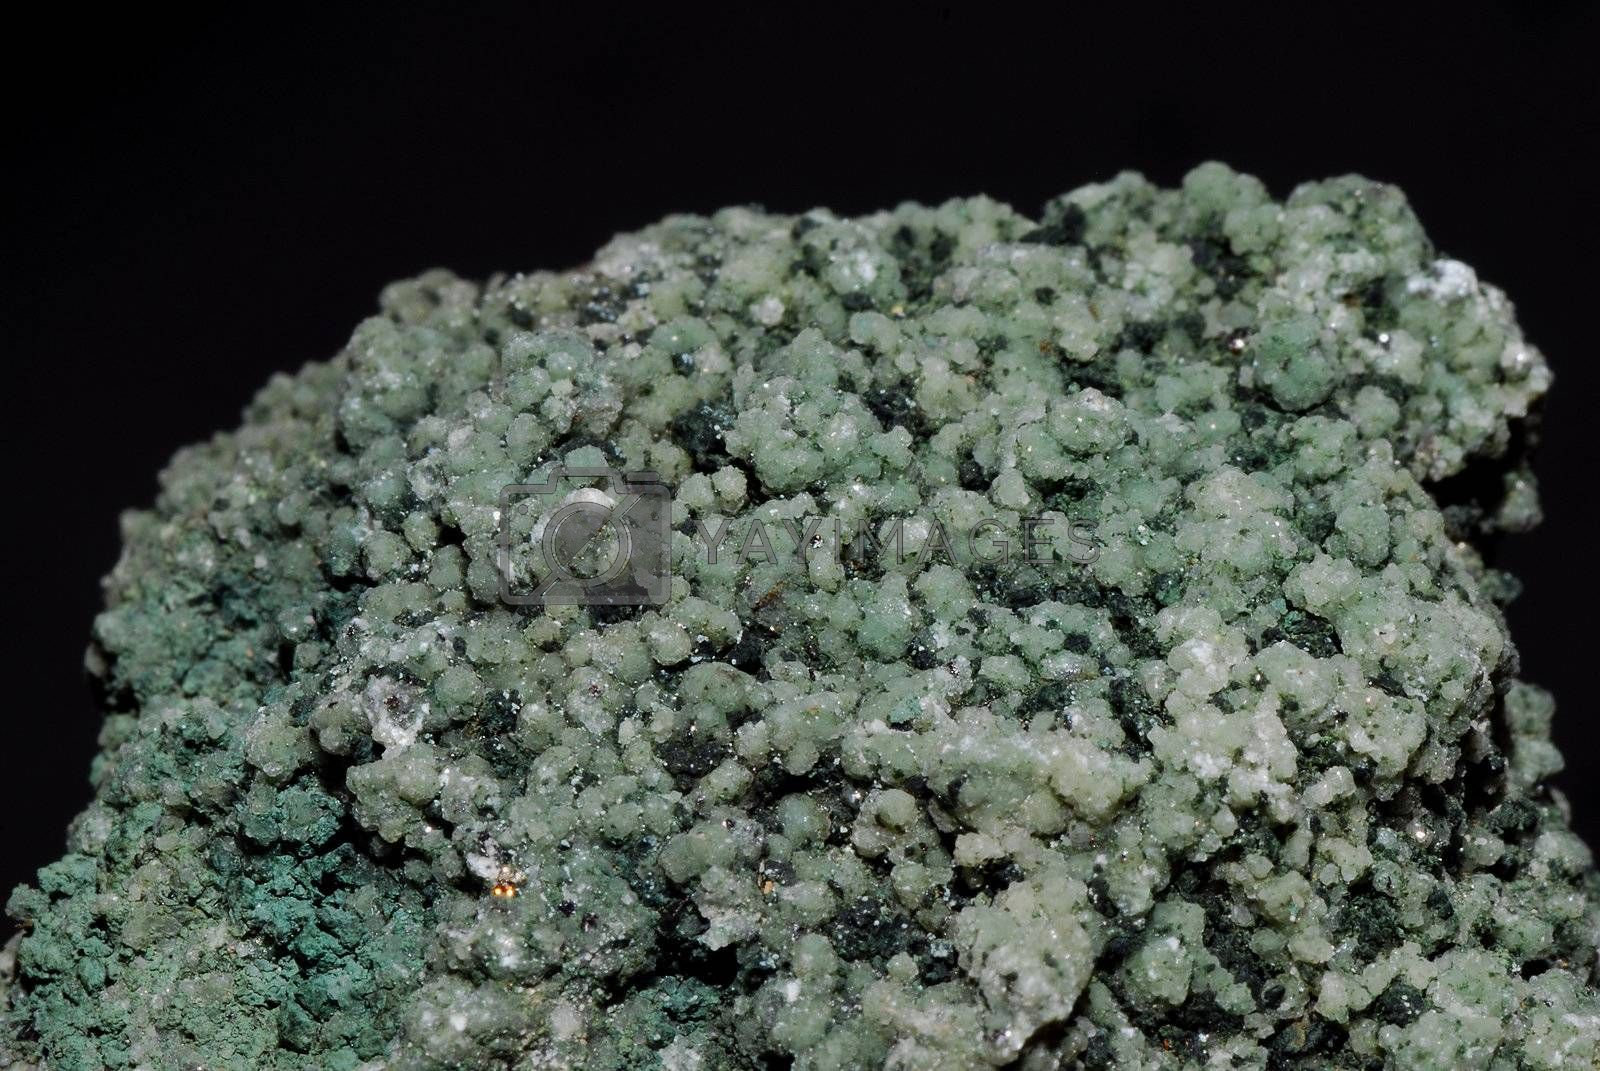 green stone and mineral quartz crystal from a quarry